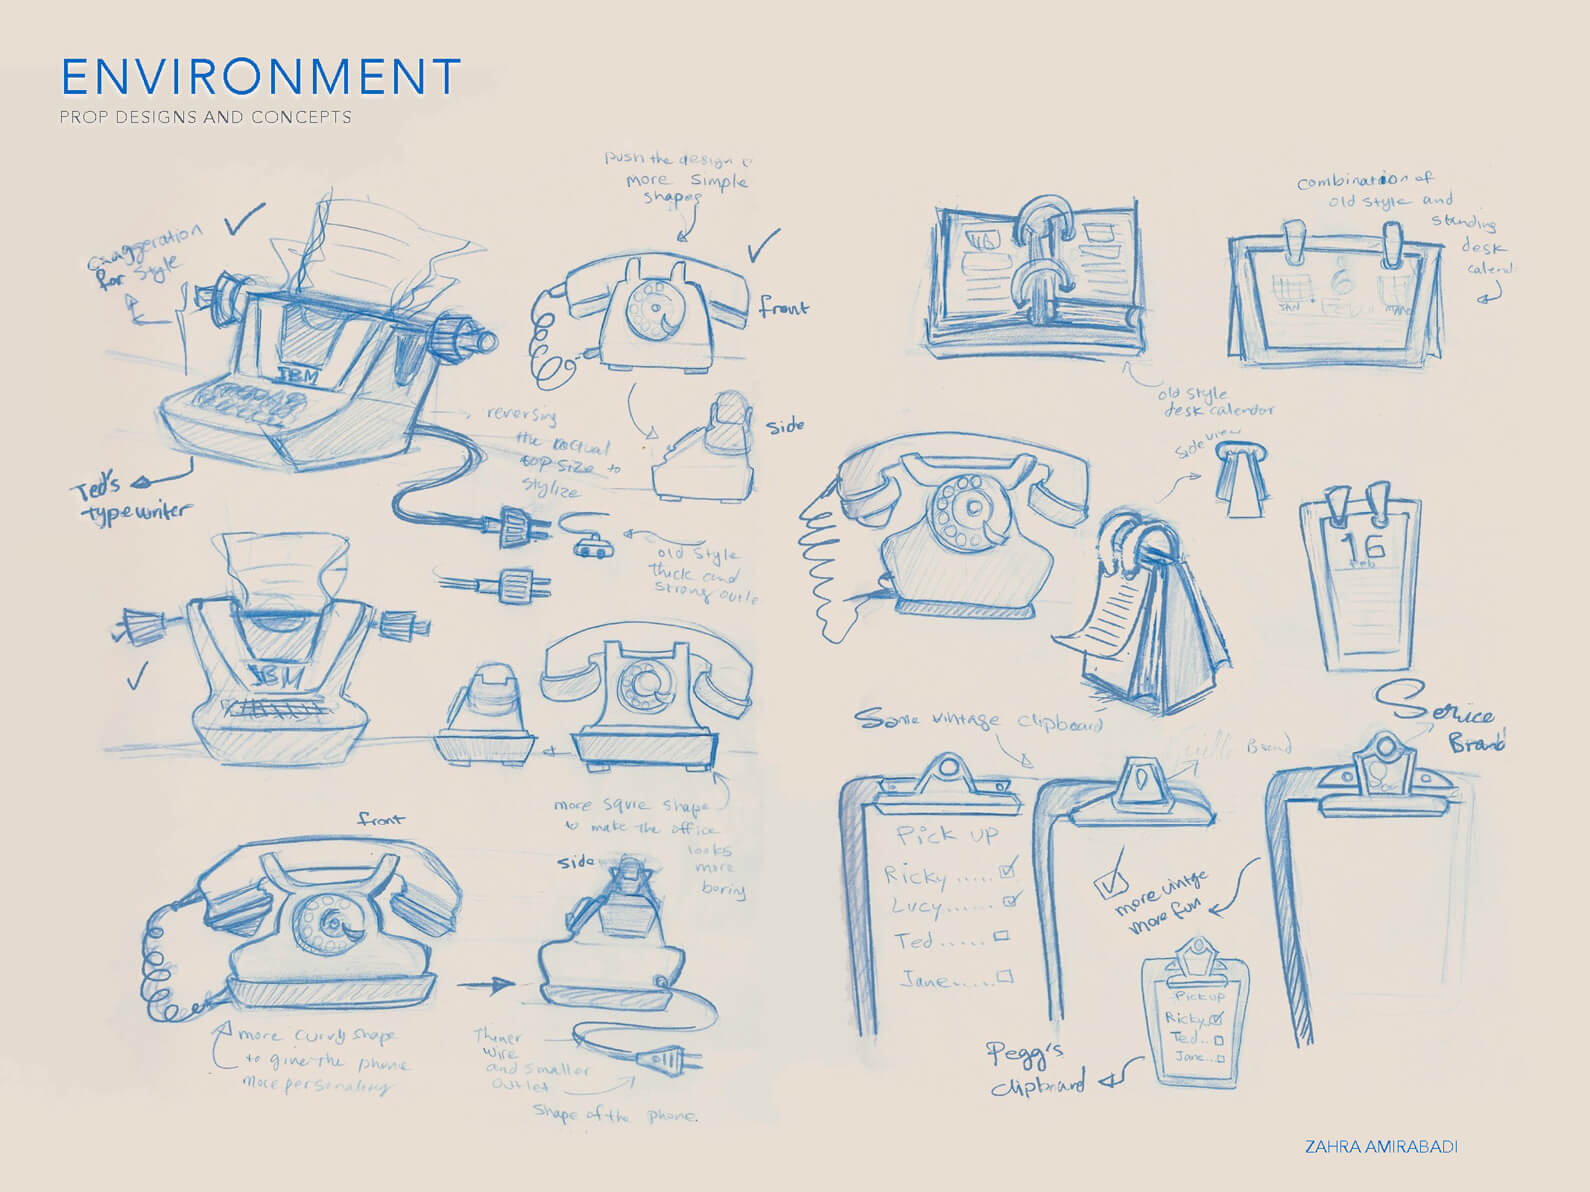 Blue line sketches of concepts for telephone, typewriter, and clipboard props for Orientation Center for the Unseen